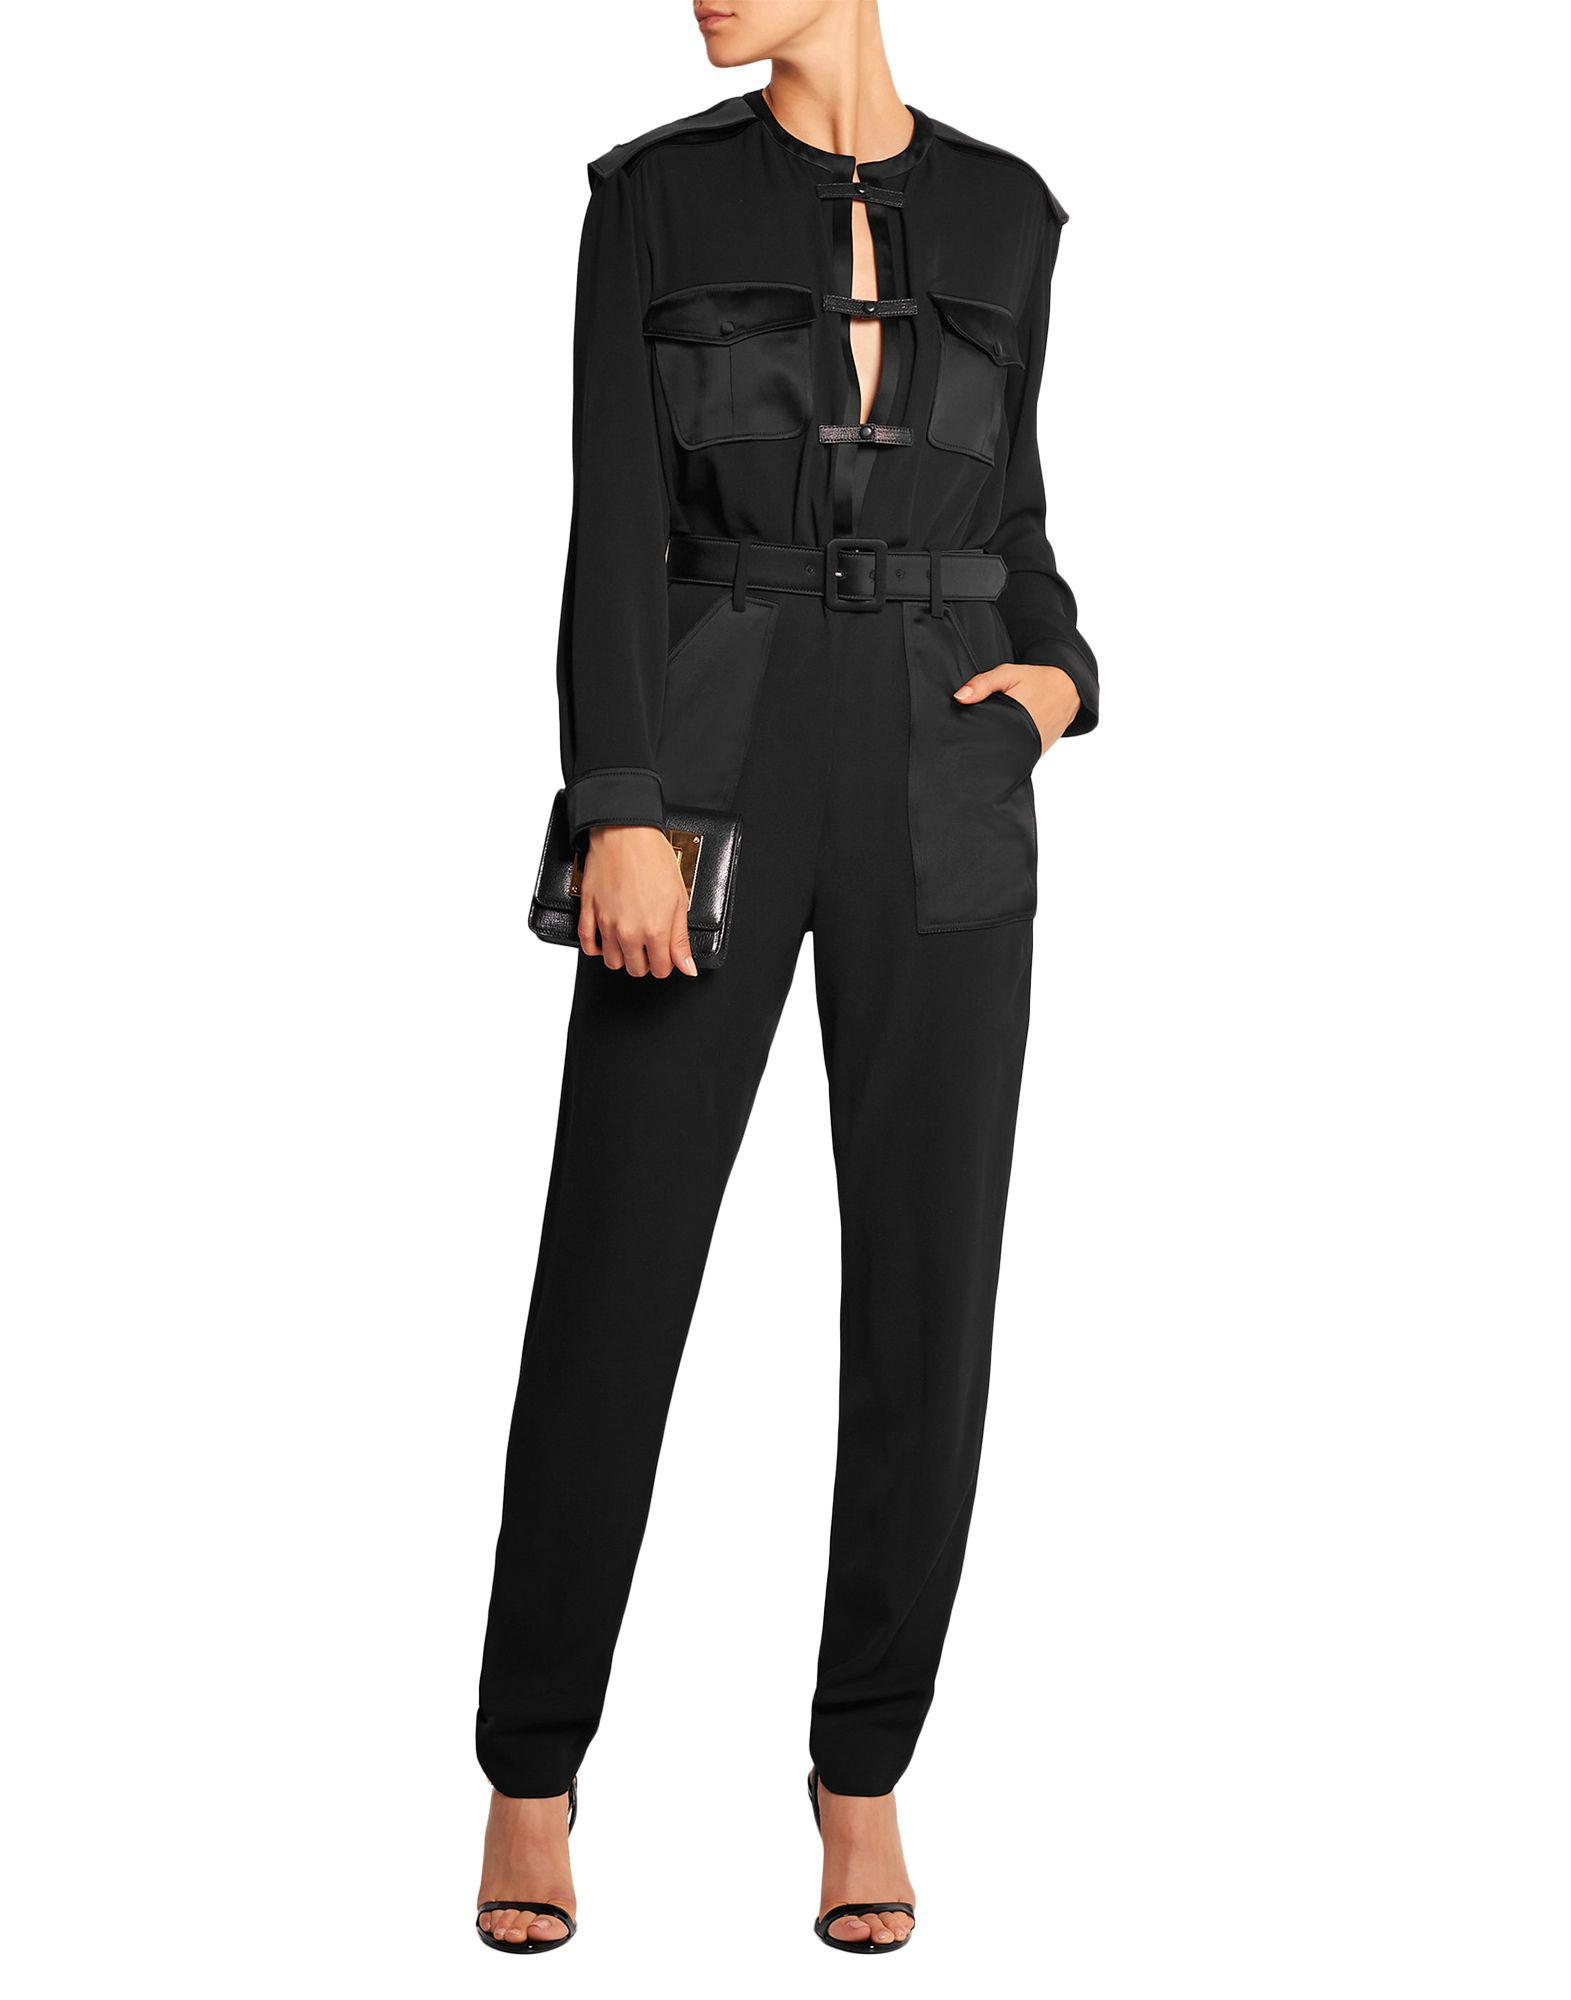 e35740c1f3e9 Lyst - Tom Ford Jumpsuit in Black